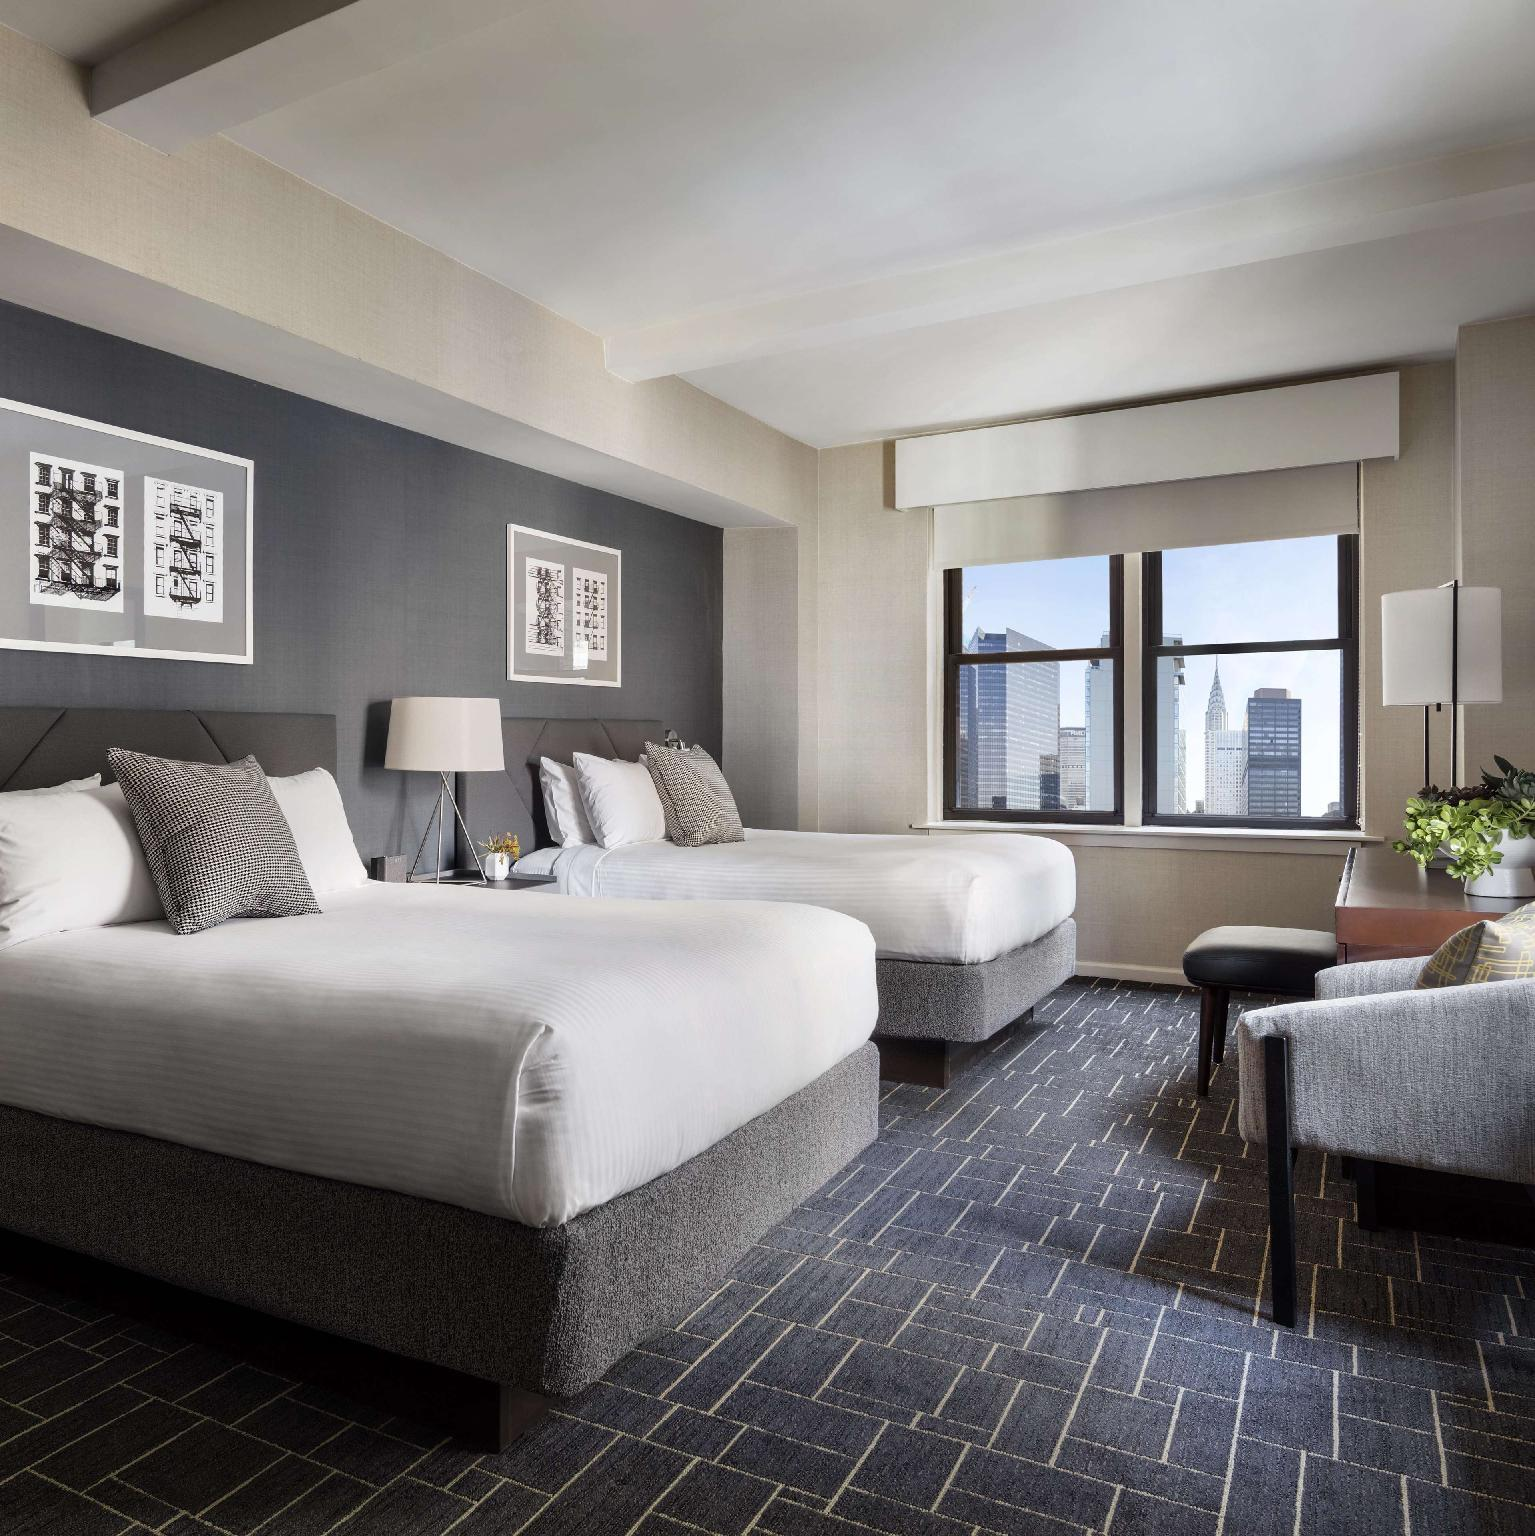 One Bedroom Apartment Nyc: Shelburne Hotel & Suites By Affinia In New York (NY